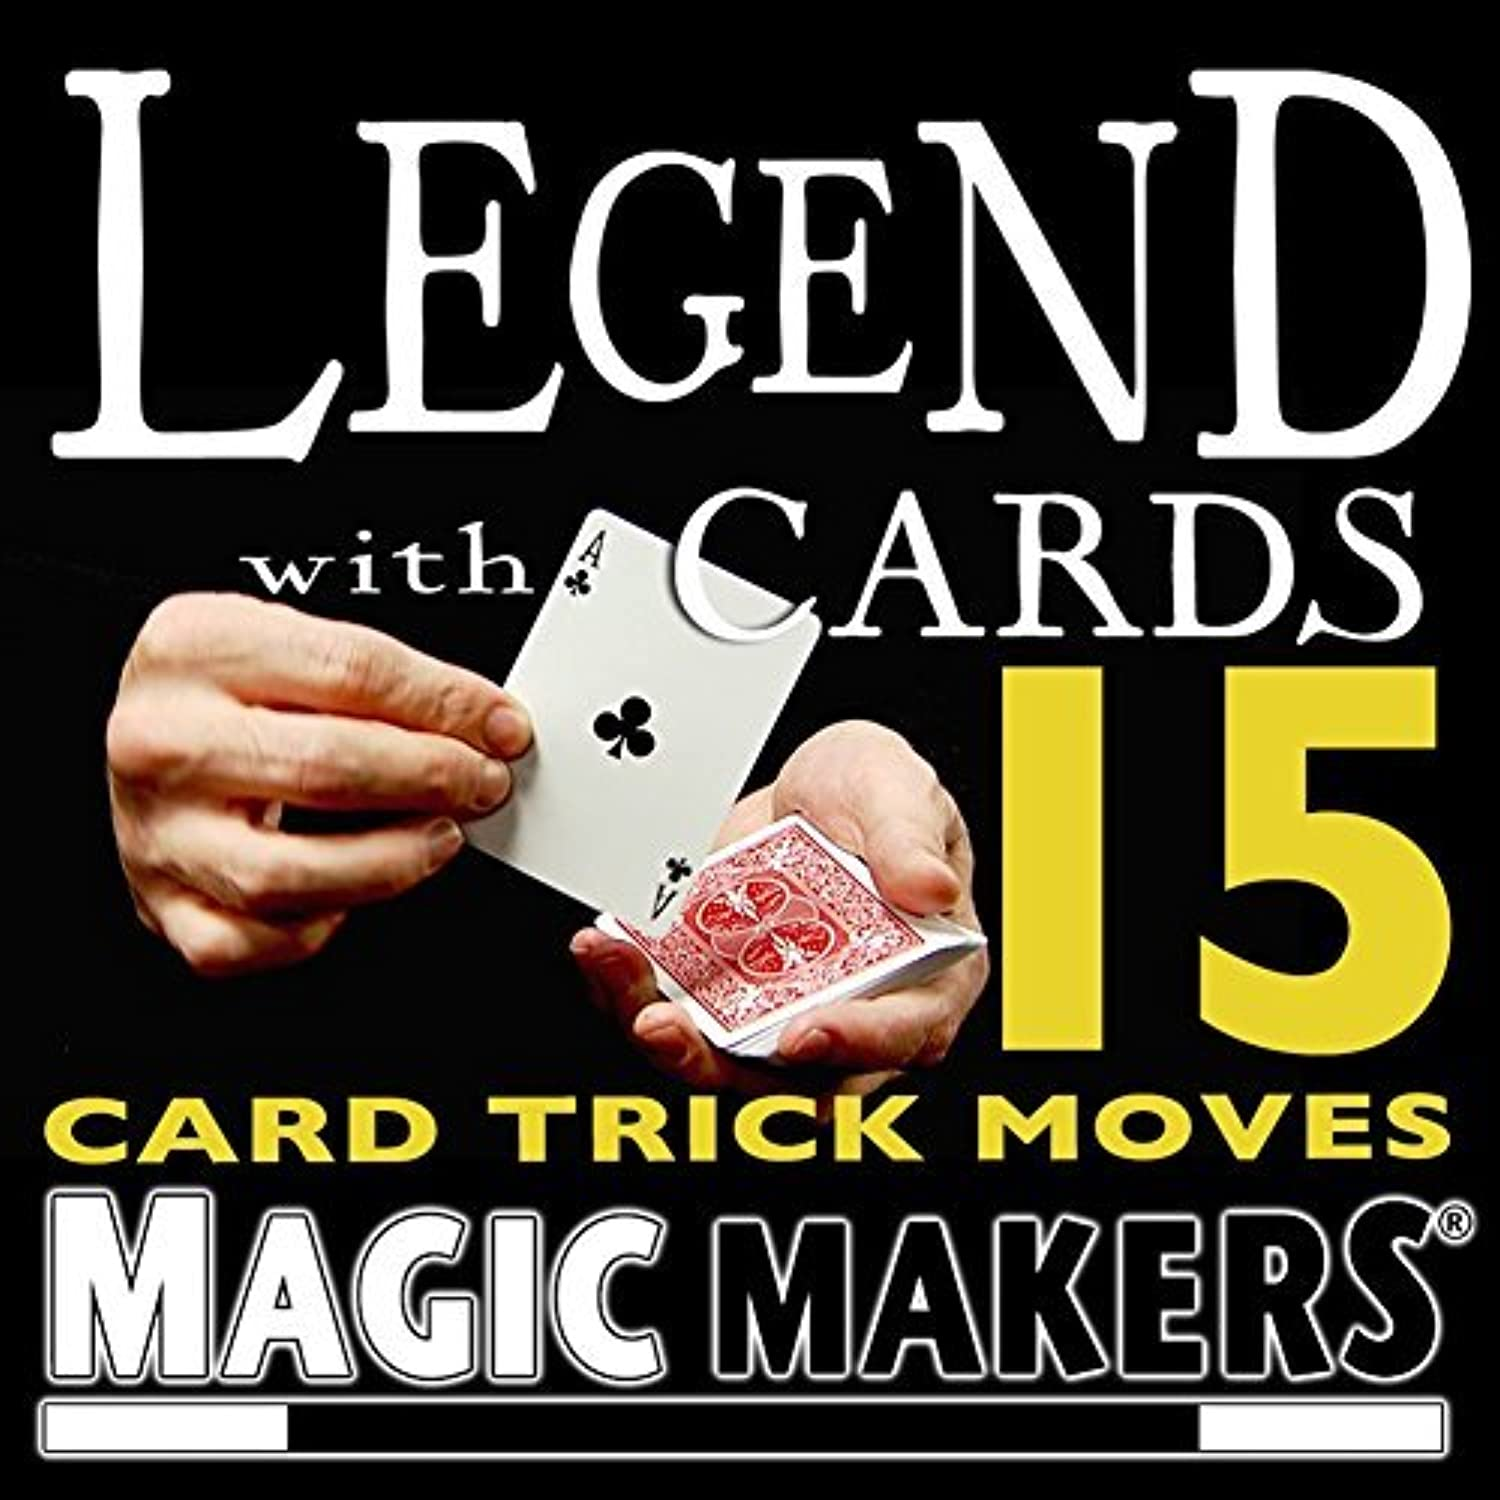 15 Card Trick Moves  Legend with Cards by Magic Makers